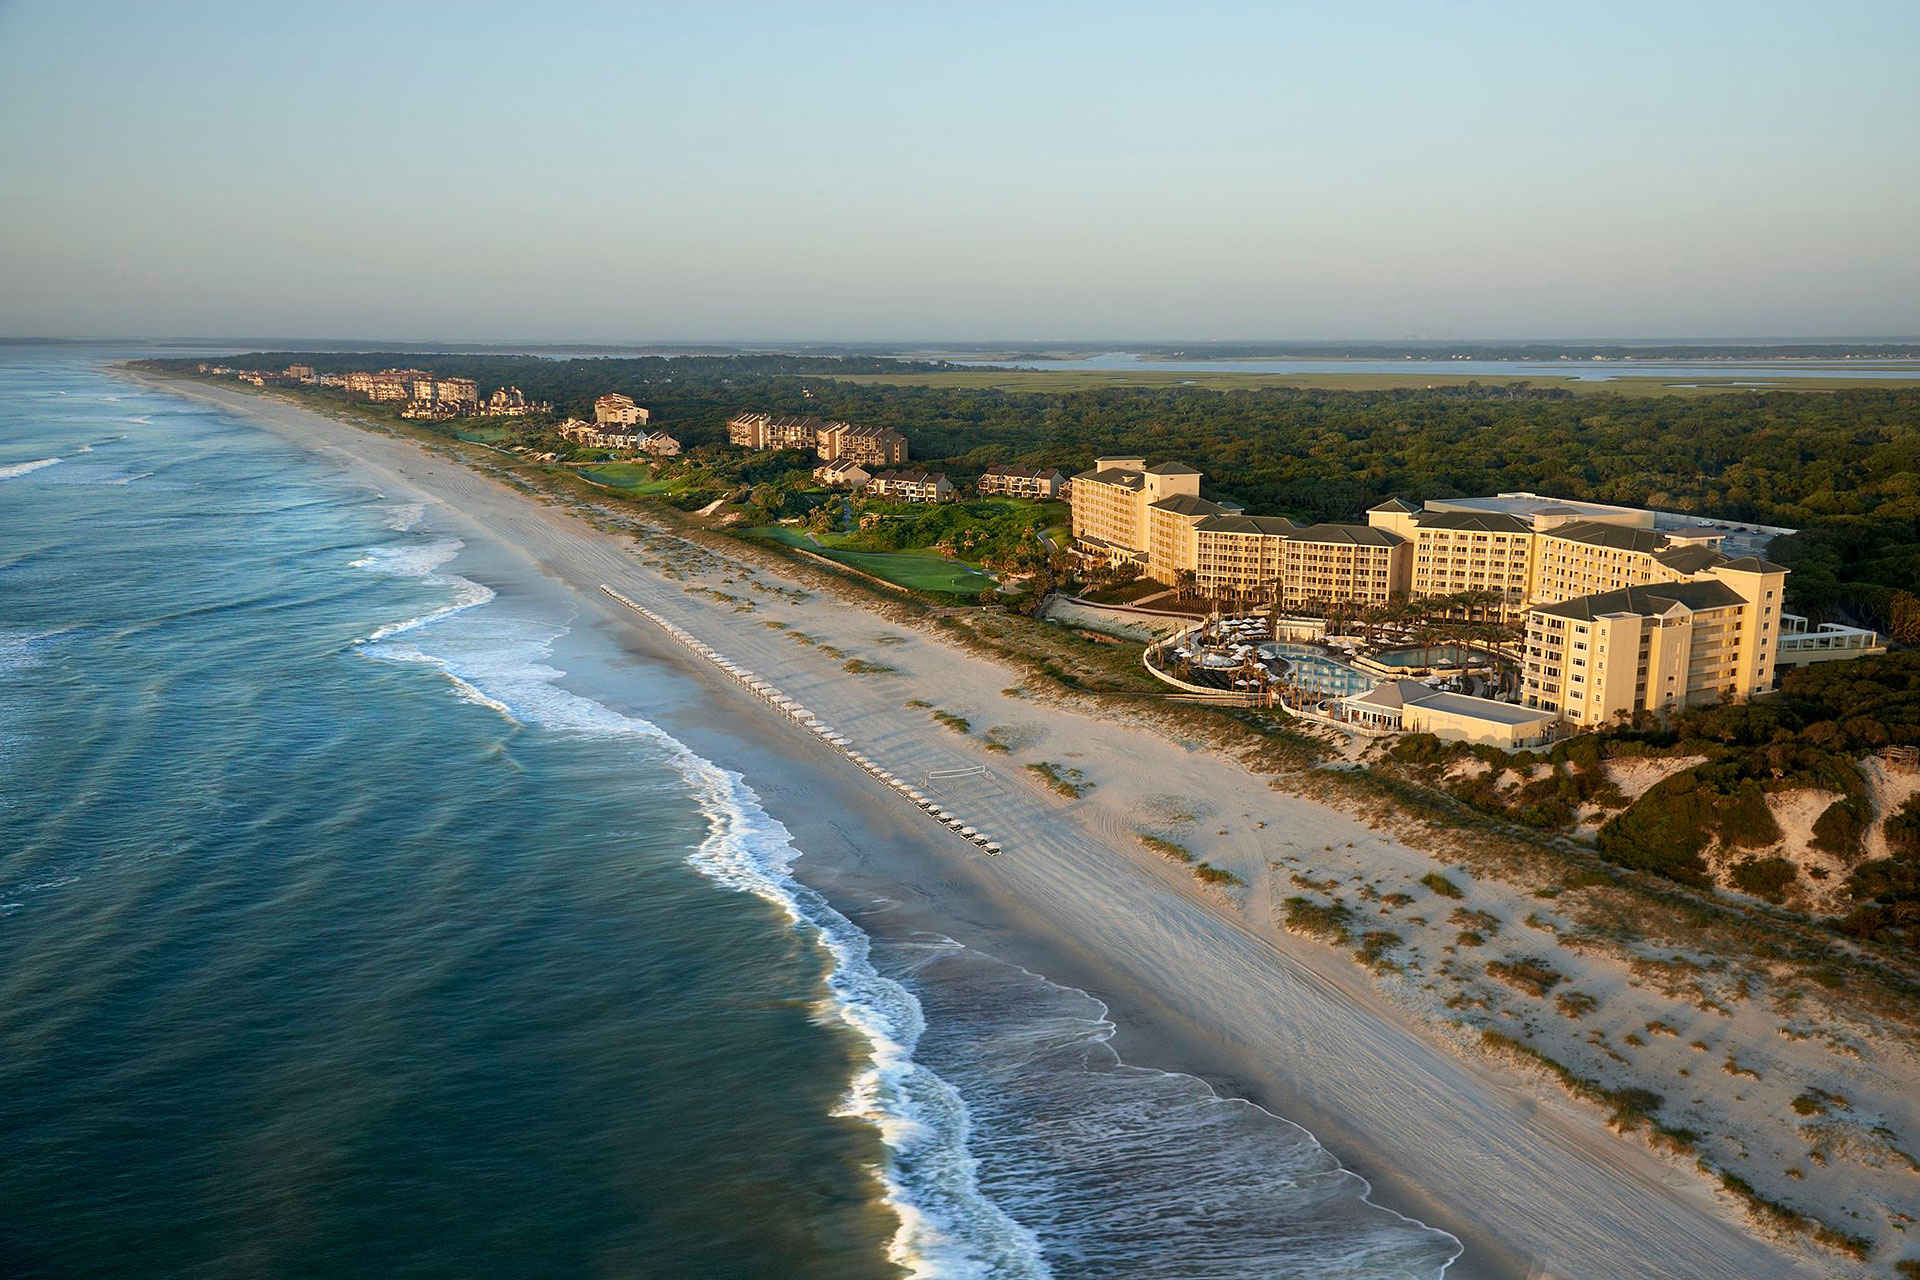 Omni Amelia Island Plantation Resort; Courtesy of Omni Amelia Island Plantation Resort